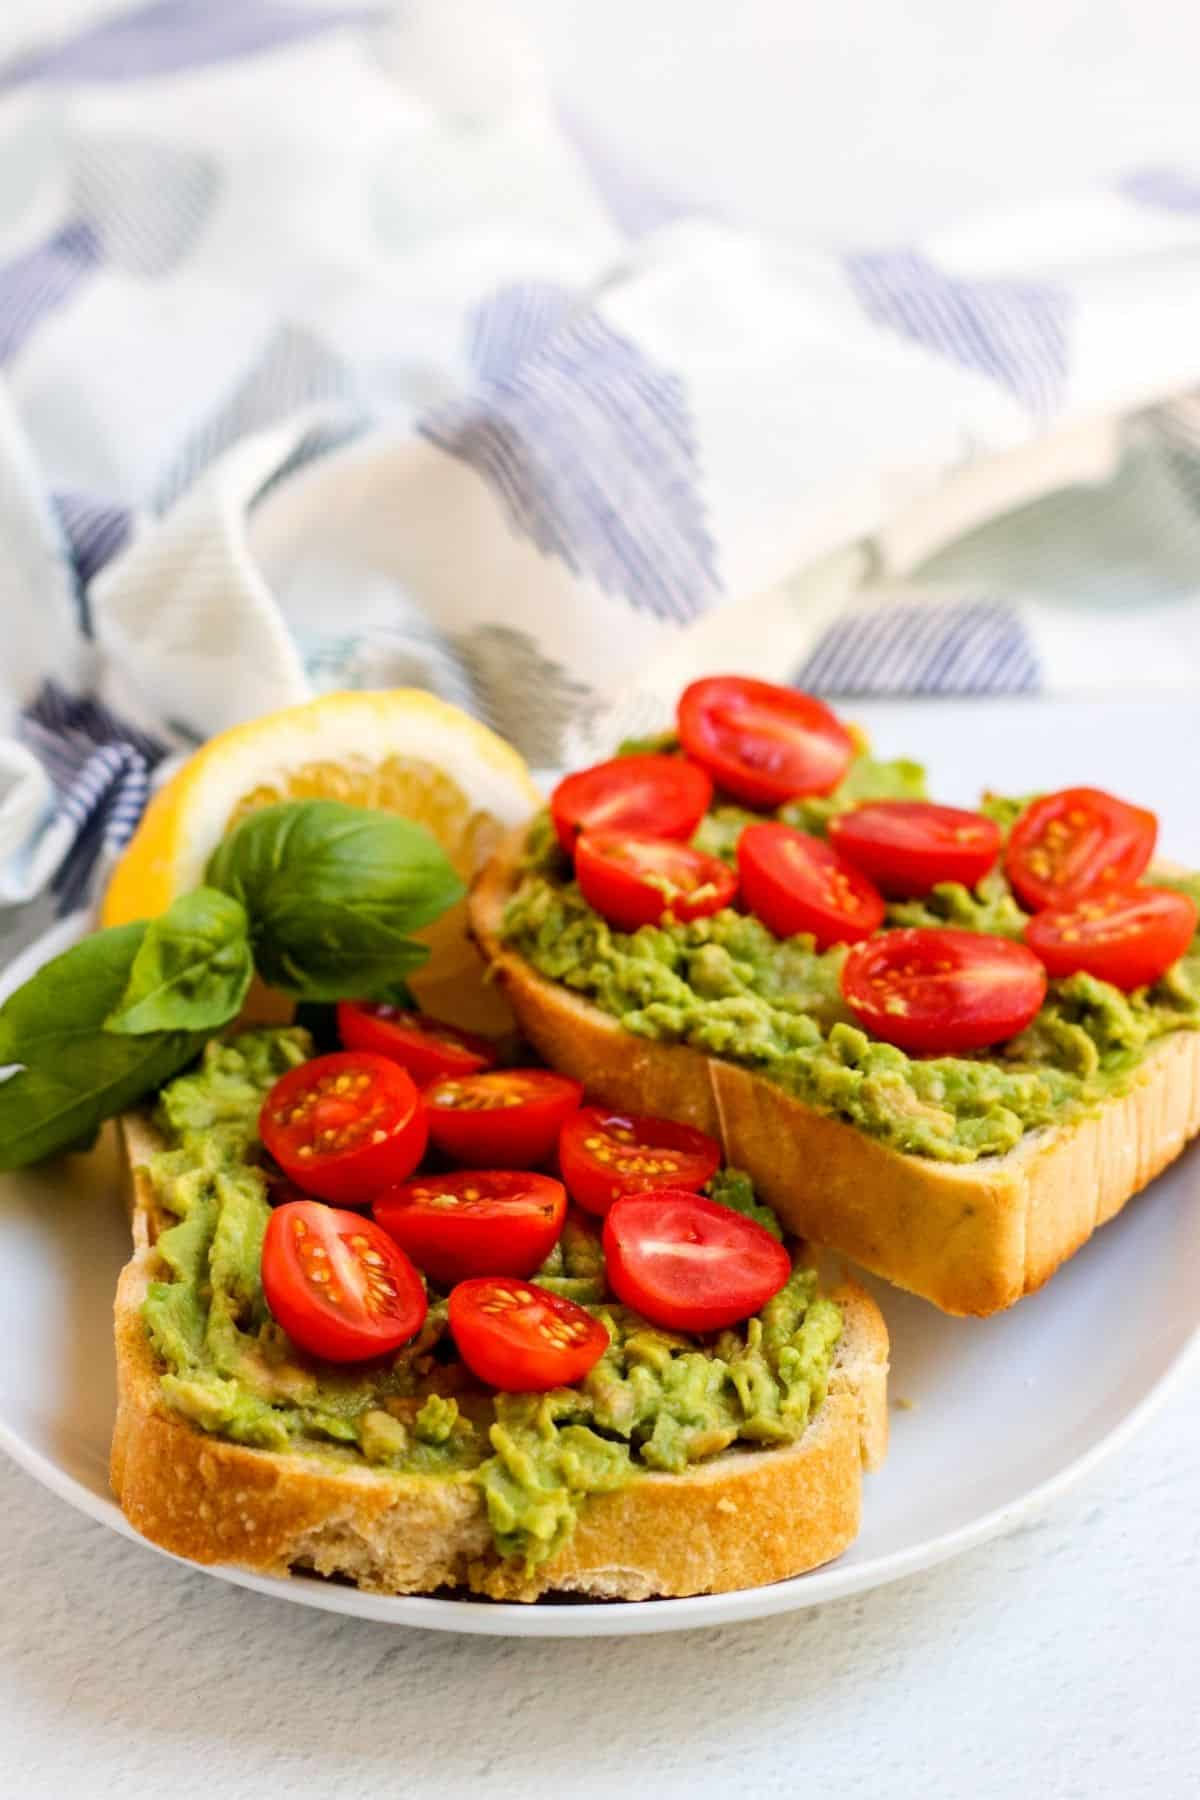 Finished slices of avocado toast on a plate topped with halved cherry tomatoes and garnished with sprig of basil and lemon wedge